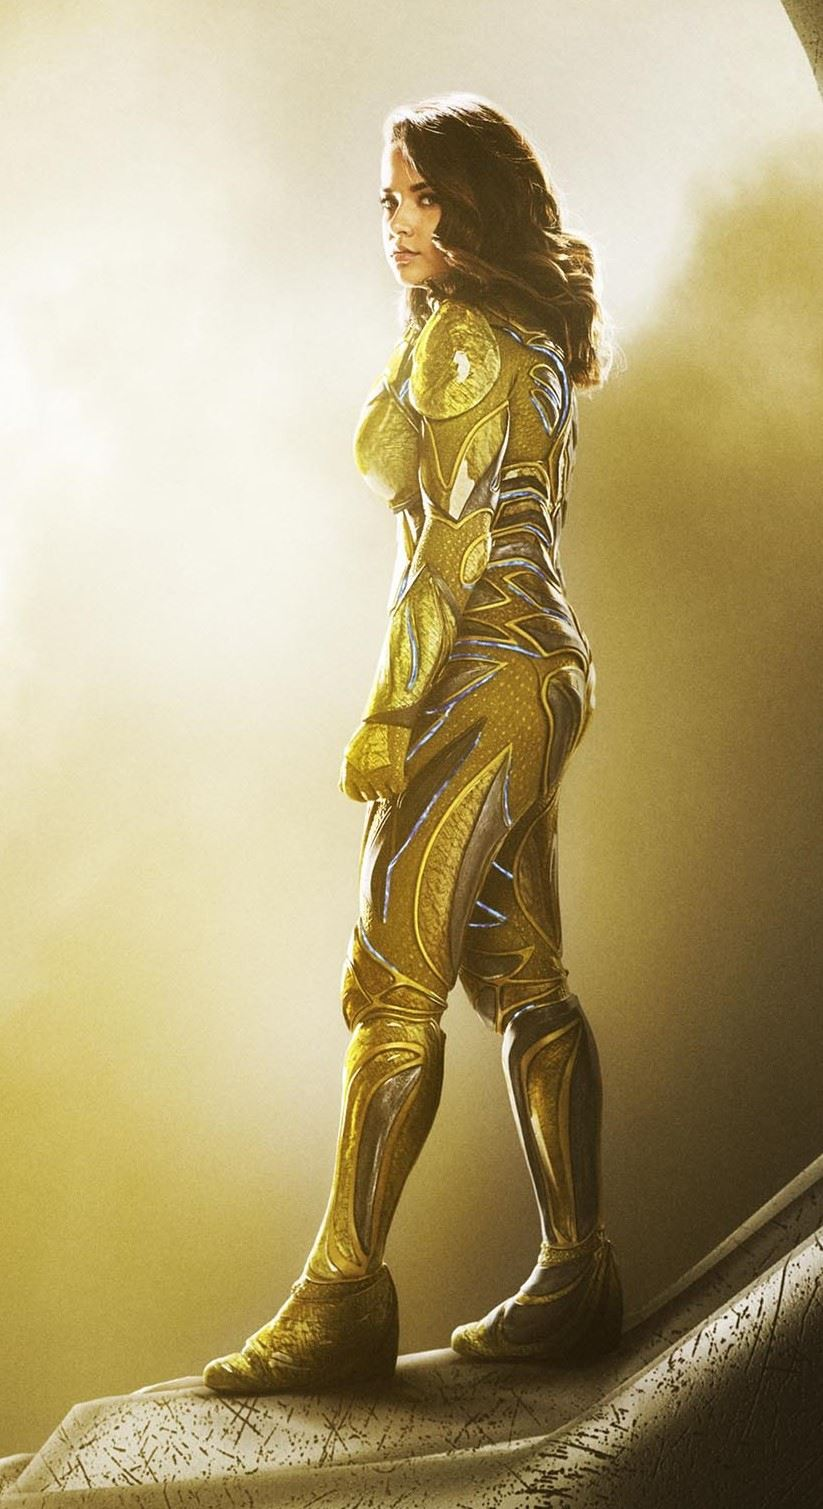 Power rangers movie character descriptions released - Becky g trini ...